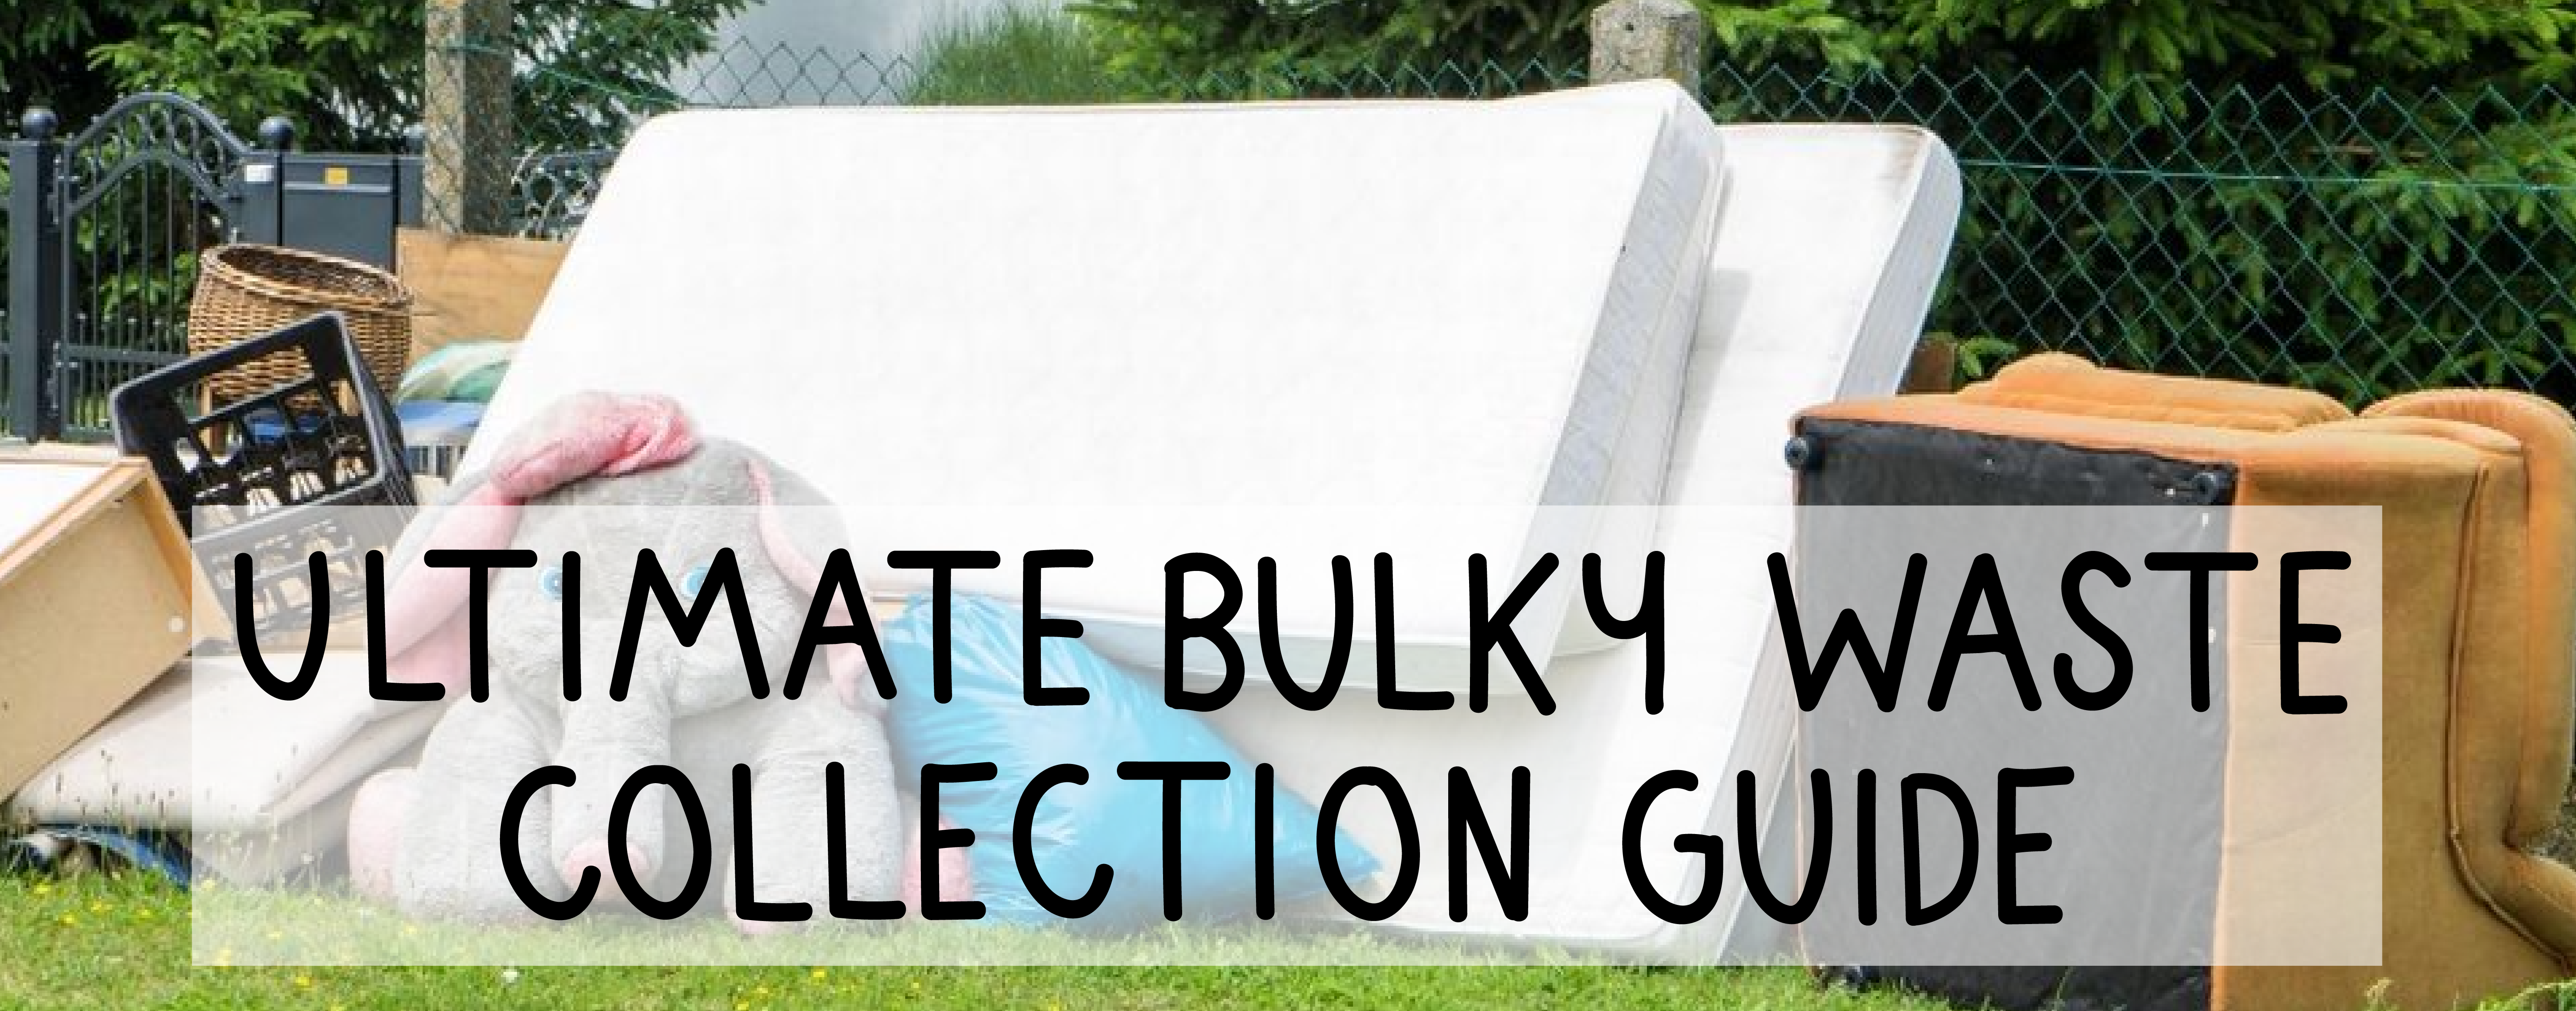 Ultimate guide to bulky waste collection featured image mattresses sofa and toys left outside for disposal